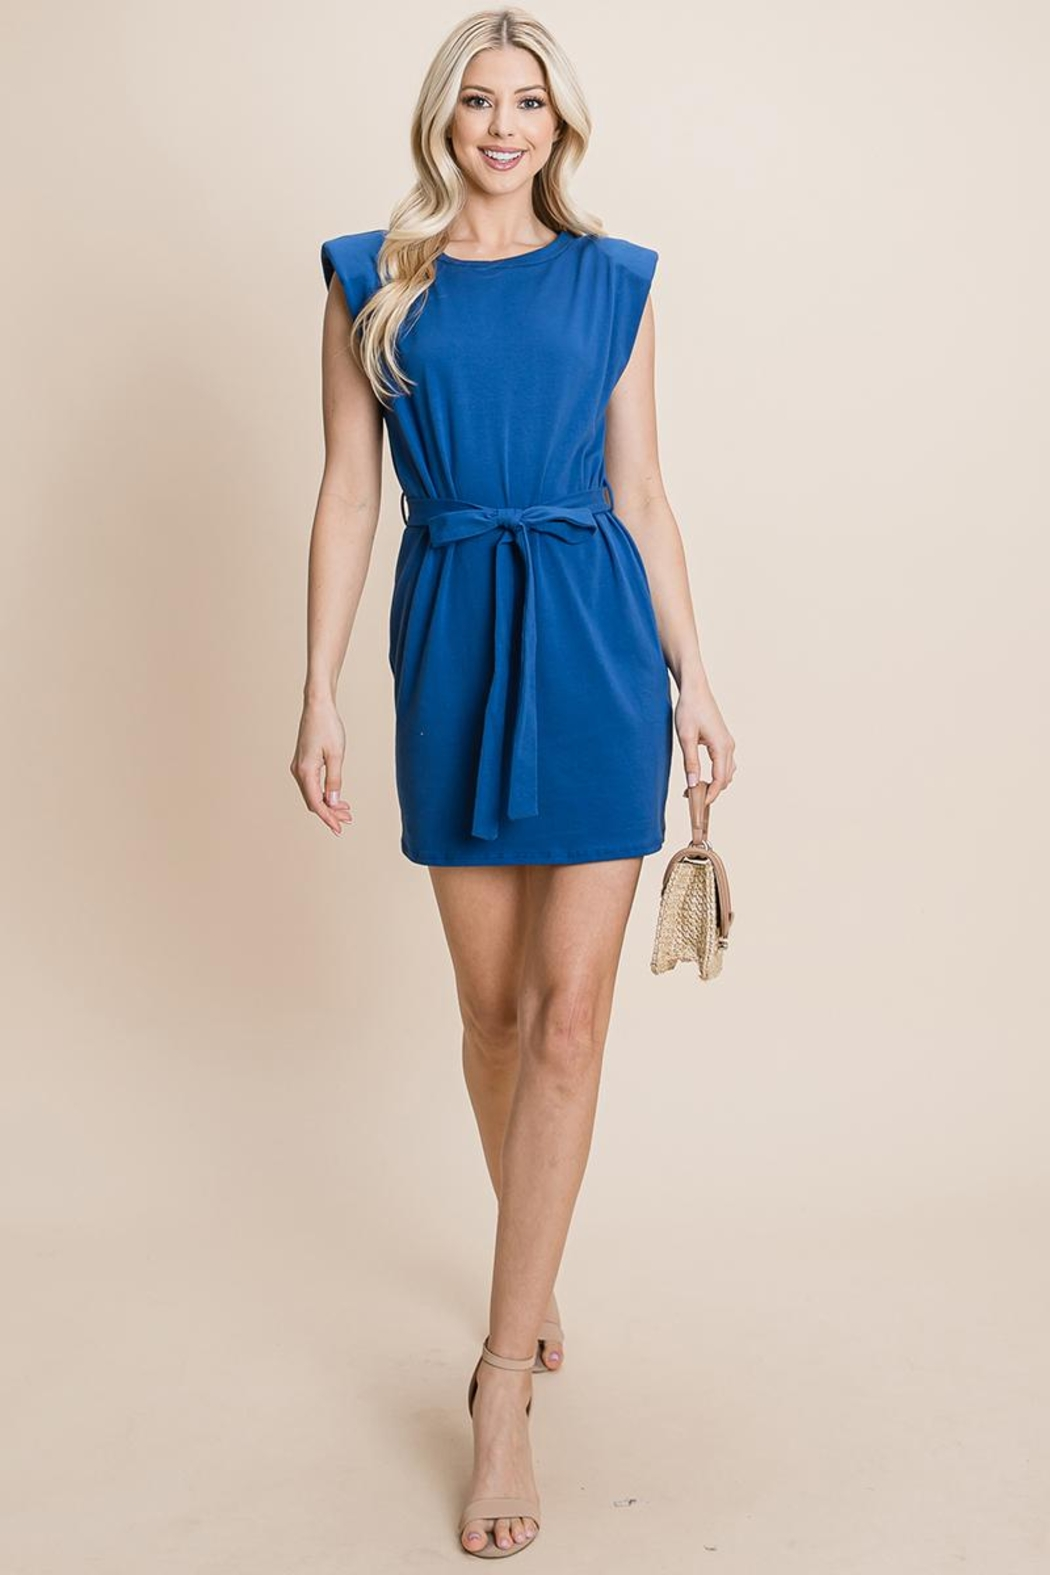 RolyPoly Casual Shoulder Pad Sleeveless Mini Belted Dress - Main Image